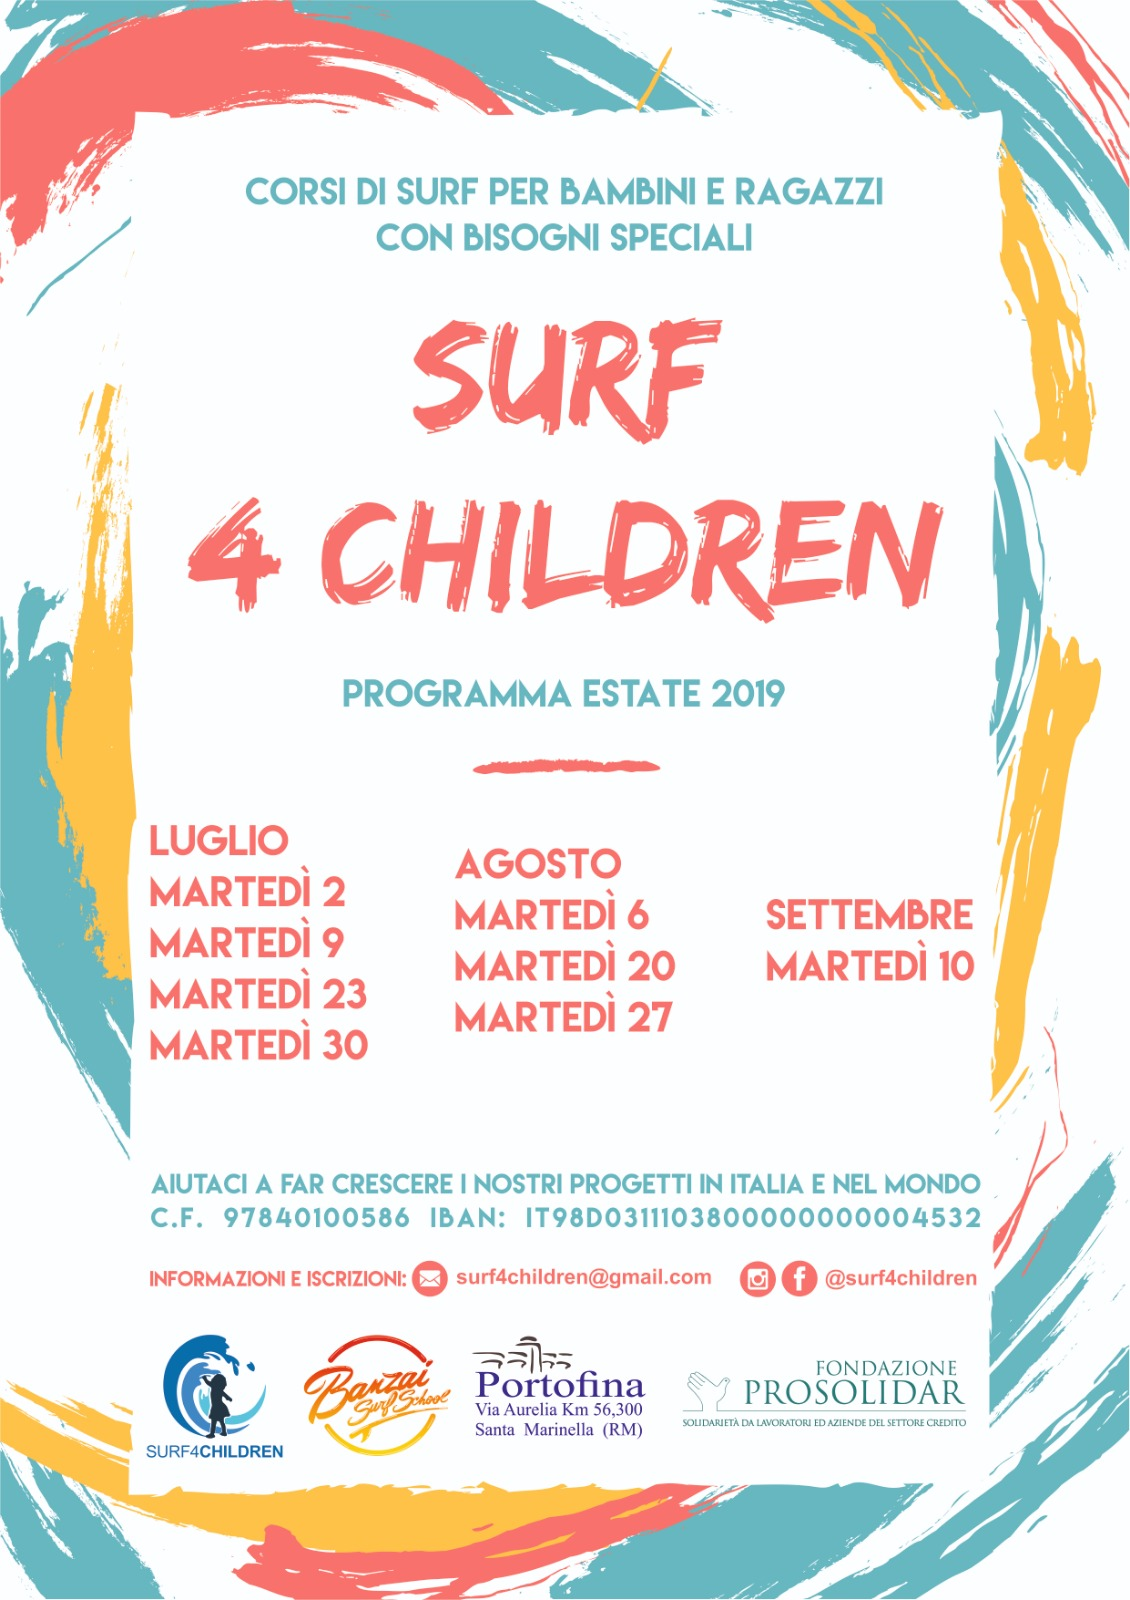 Surf, mare e tanto divertimento! Gli appuntamenti dell'estate 2019